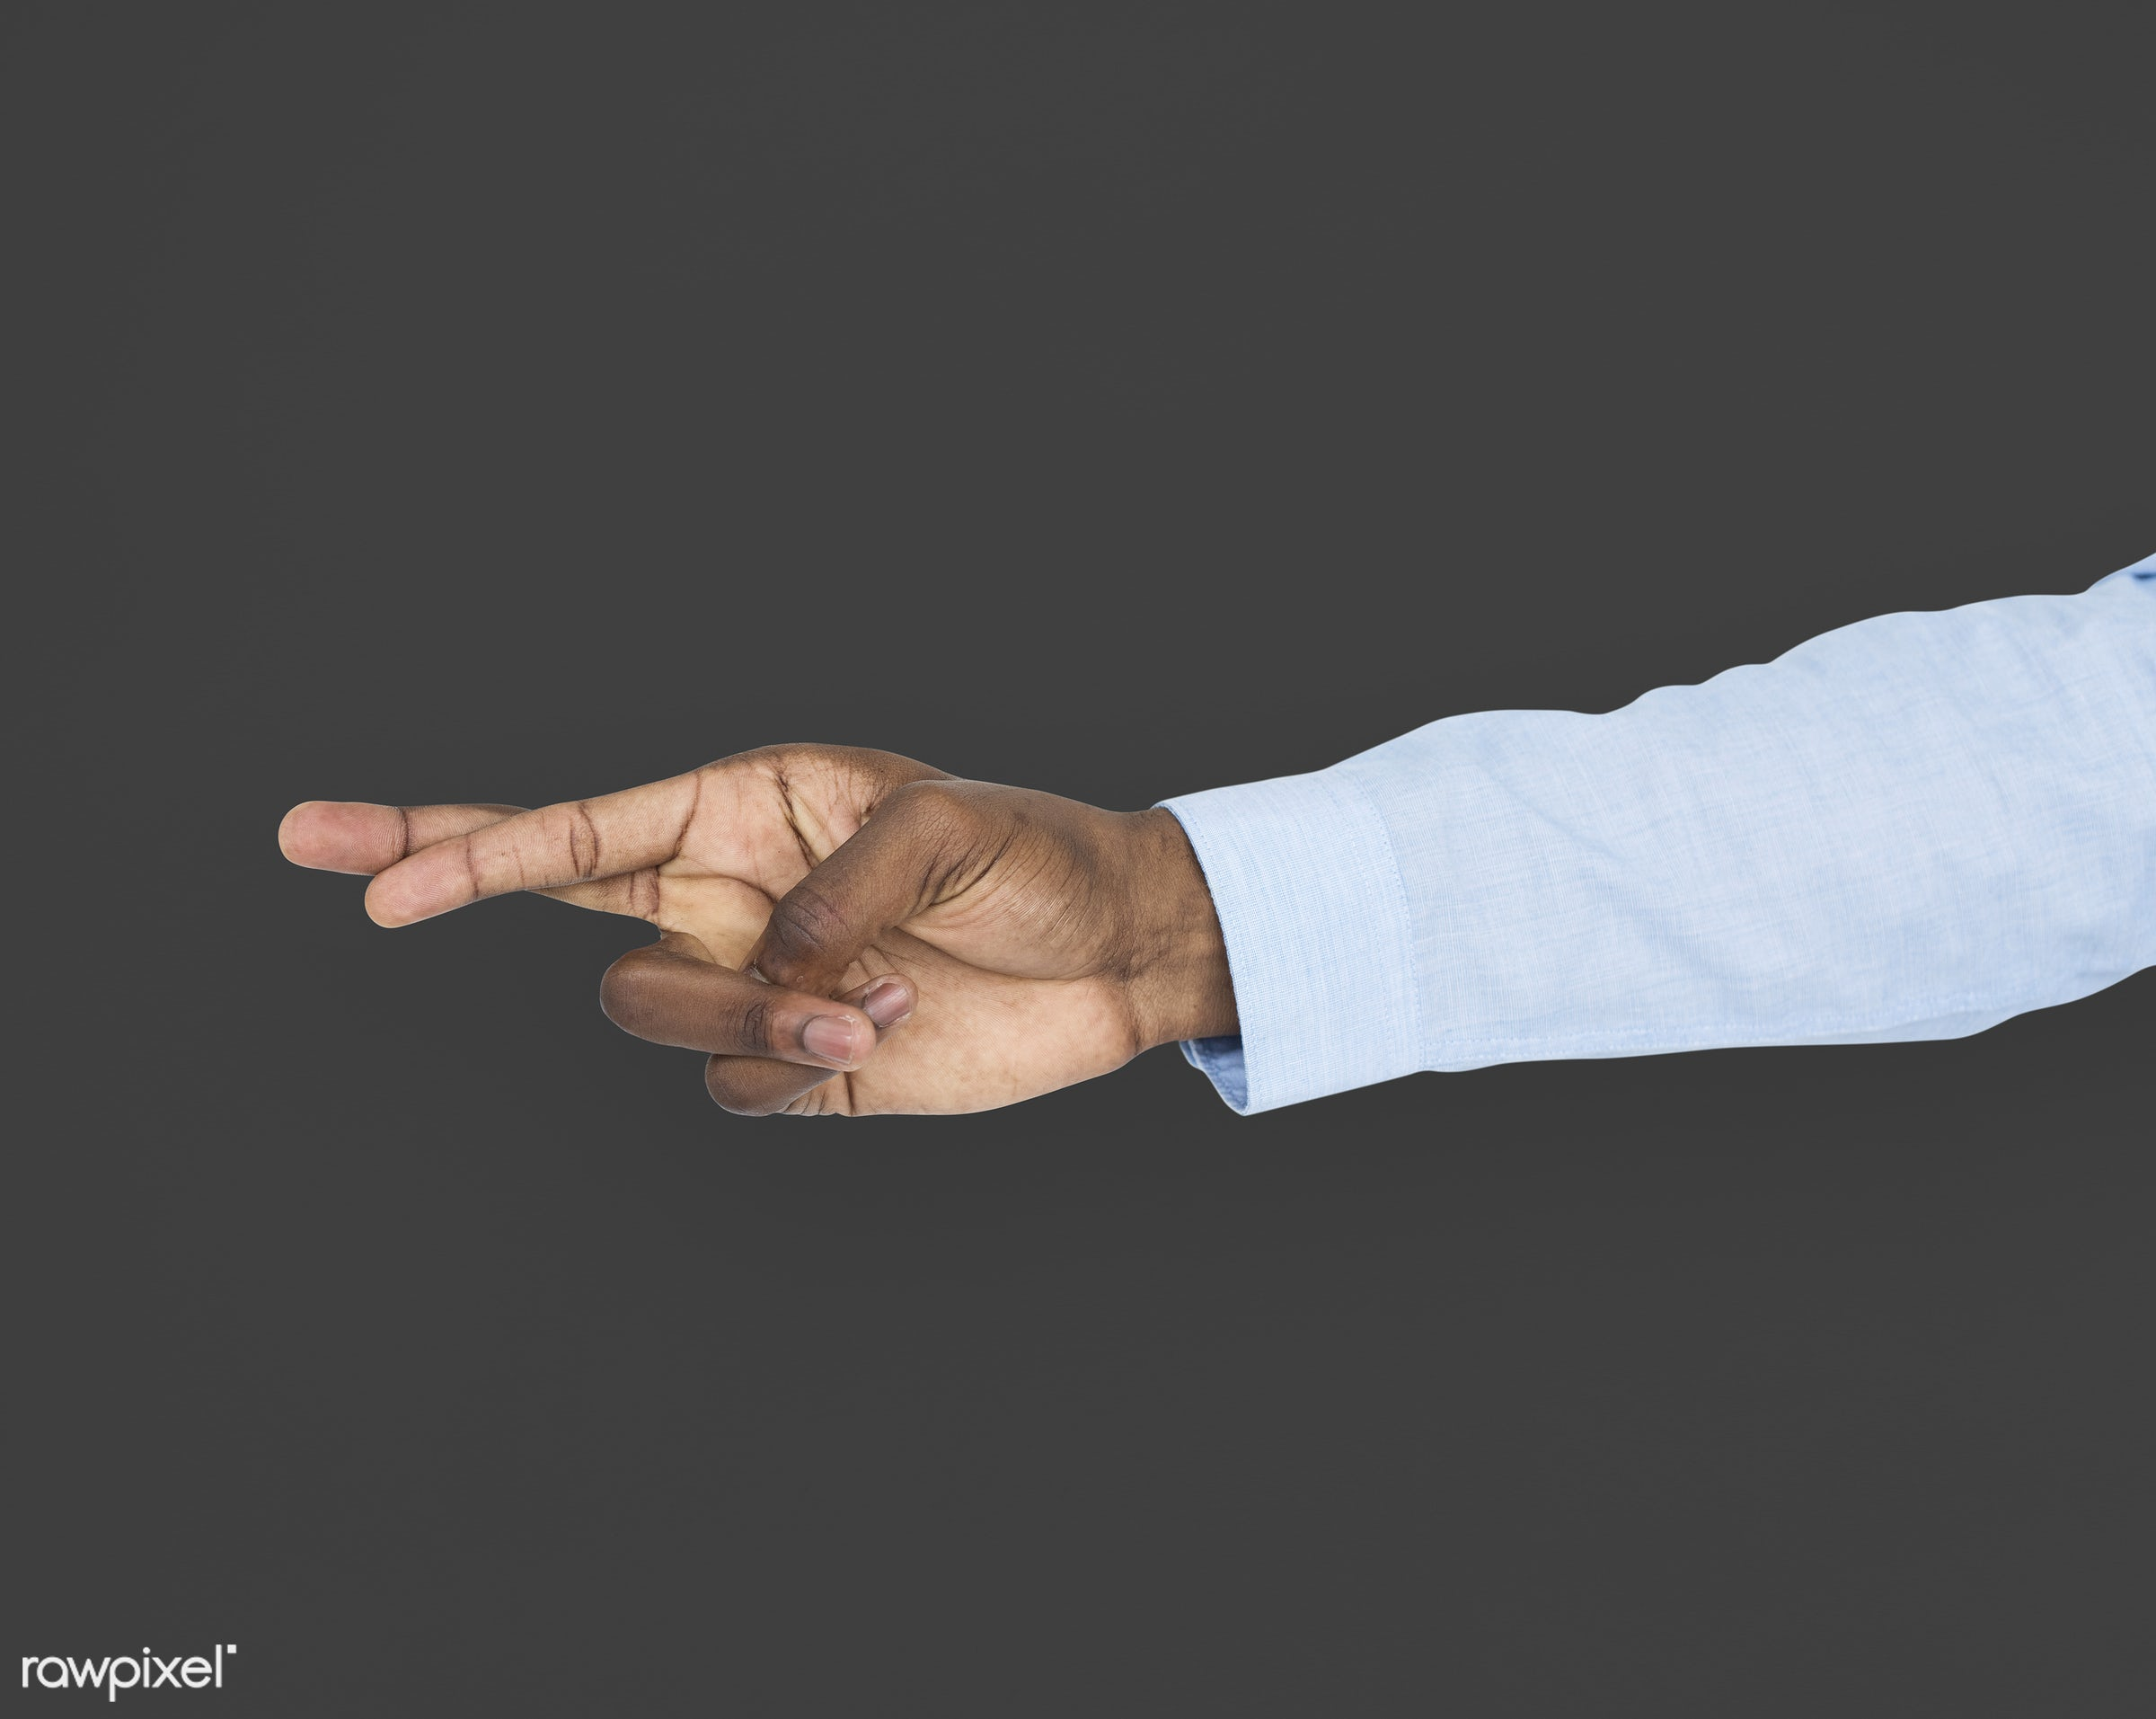 person, cut-out, race, hand, untruth, dishonesty, showing, black, isolated, african descent, luck, gesture, finger, fingers...